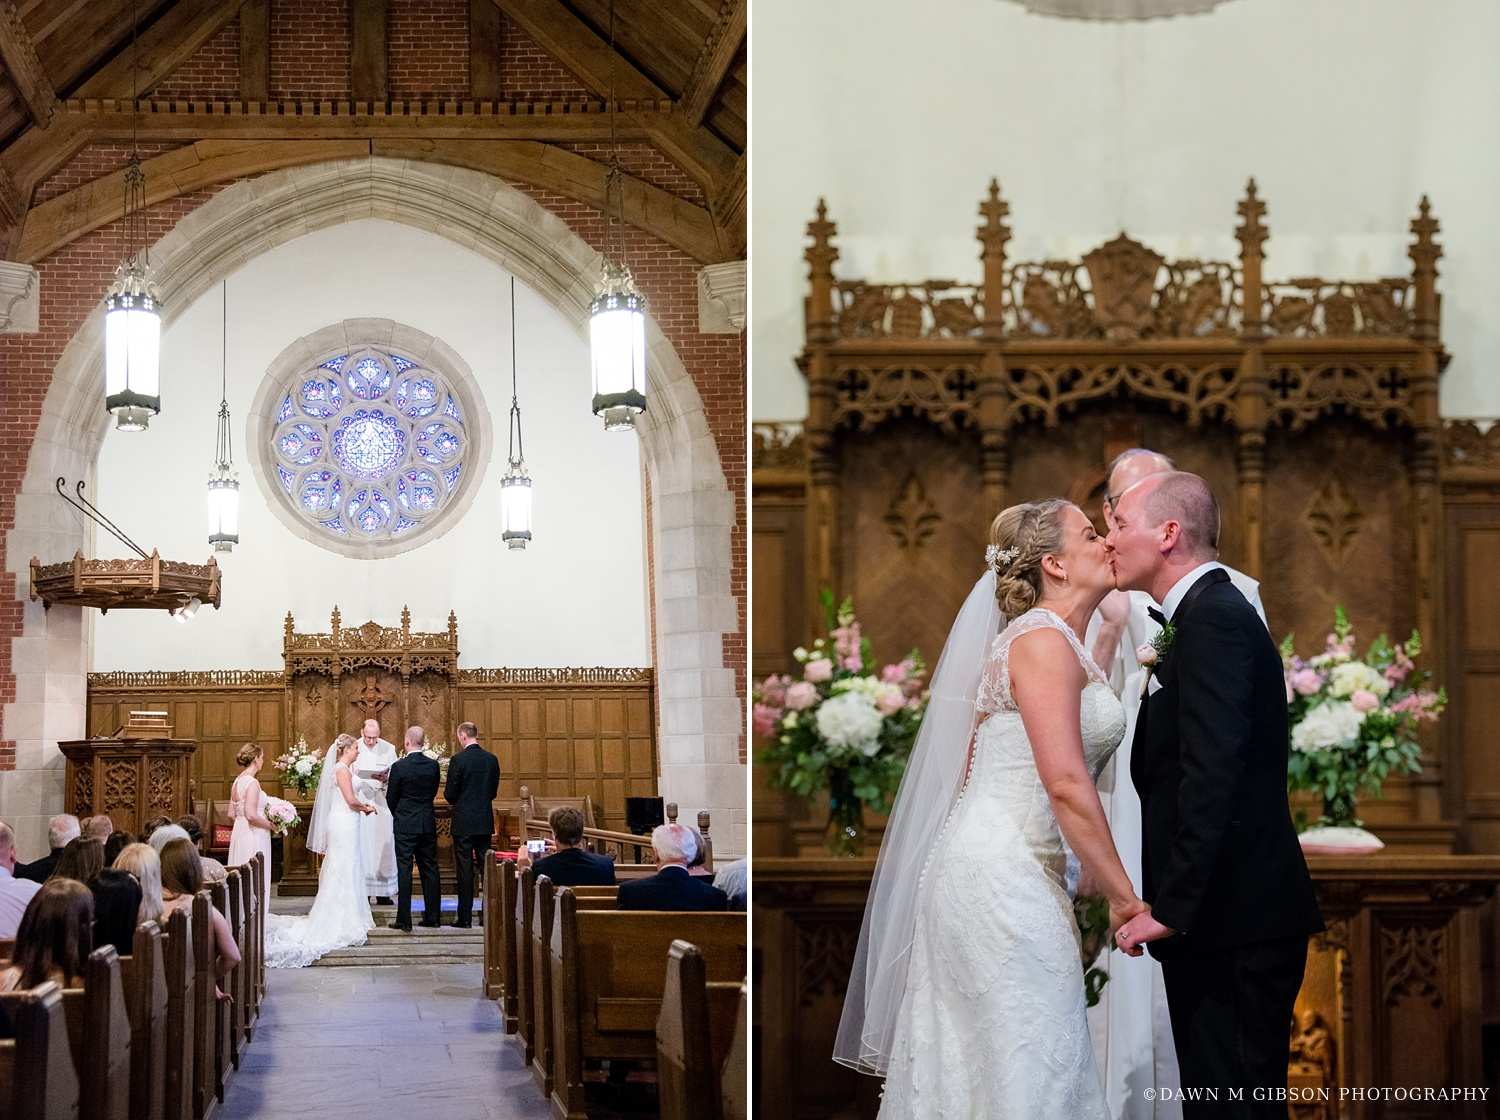 buffalo_wny_rochester_wedding_photographer_dawnmgibsonphotography_strathallan_colgate_rochester_divinity_rochester_wedding_venues_0050.jpg